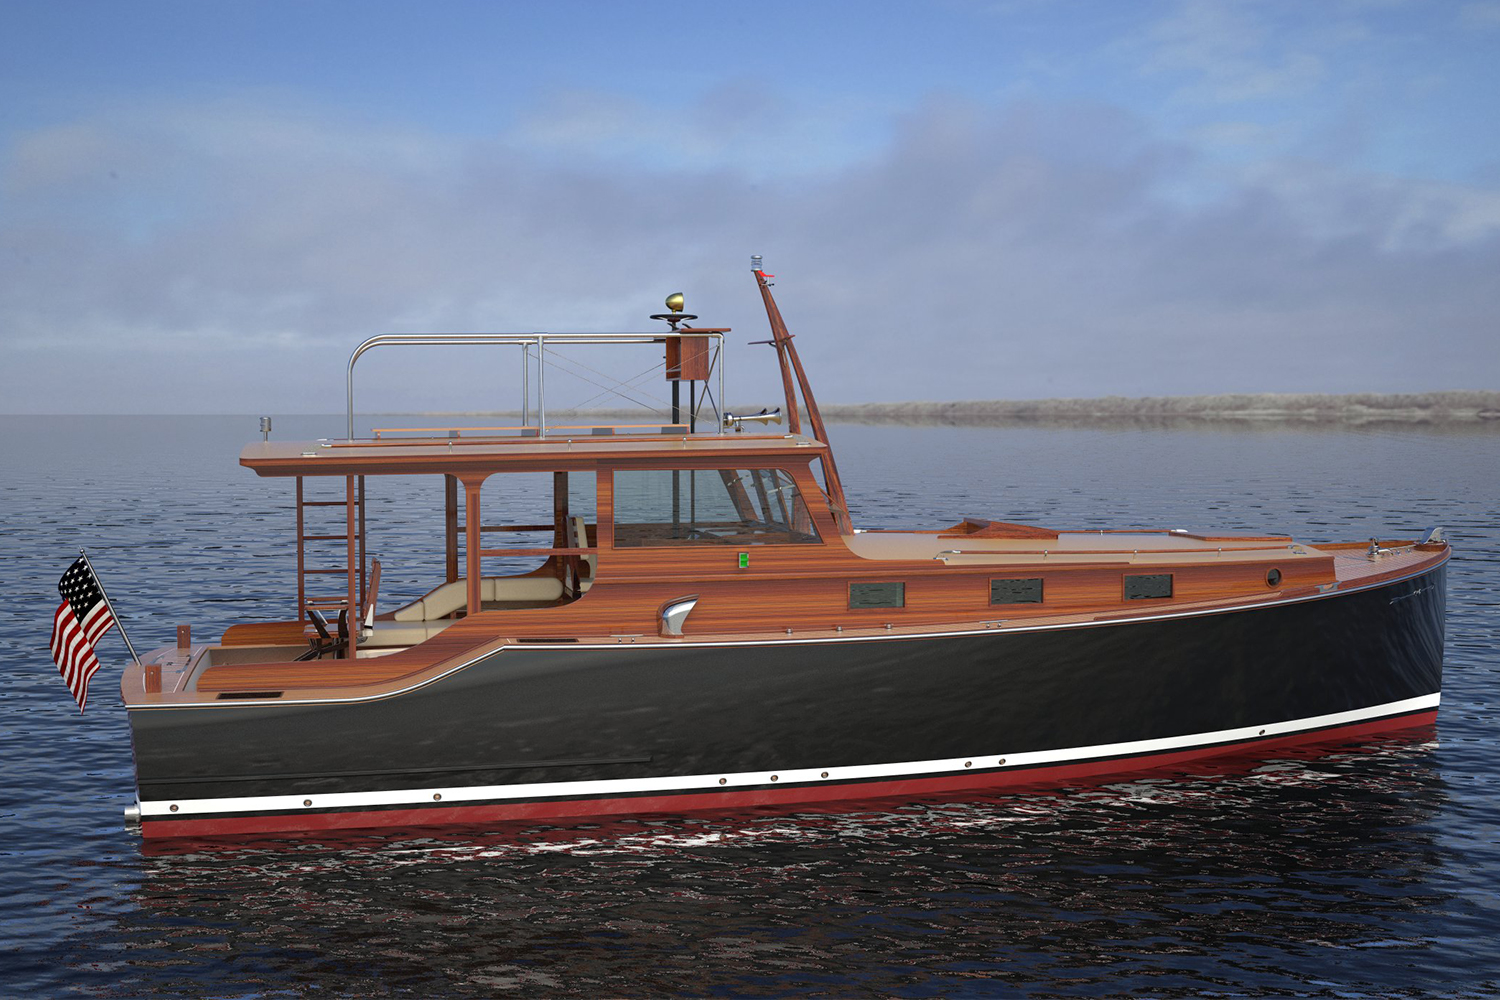 The New Wheeler 38, a Recreation of Ernest Hemingway's boat Pilar from the Wheeler Yacht Company